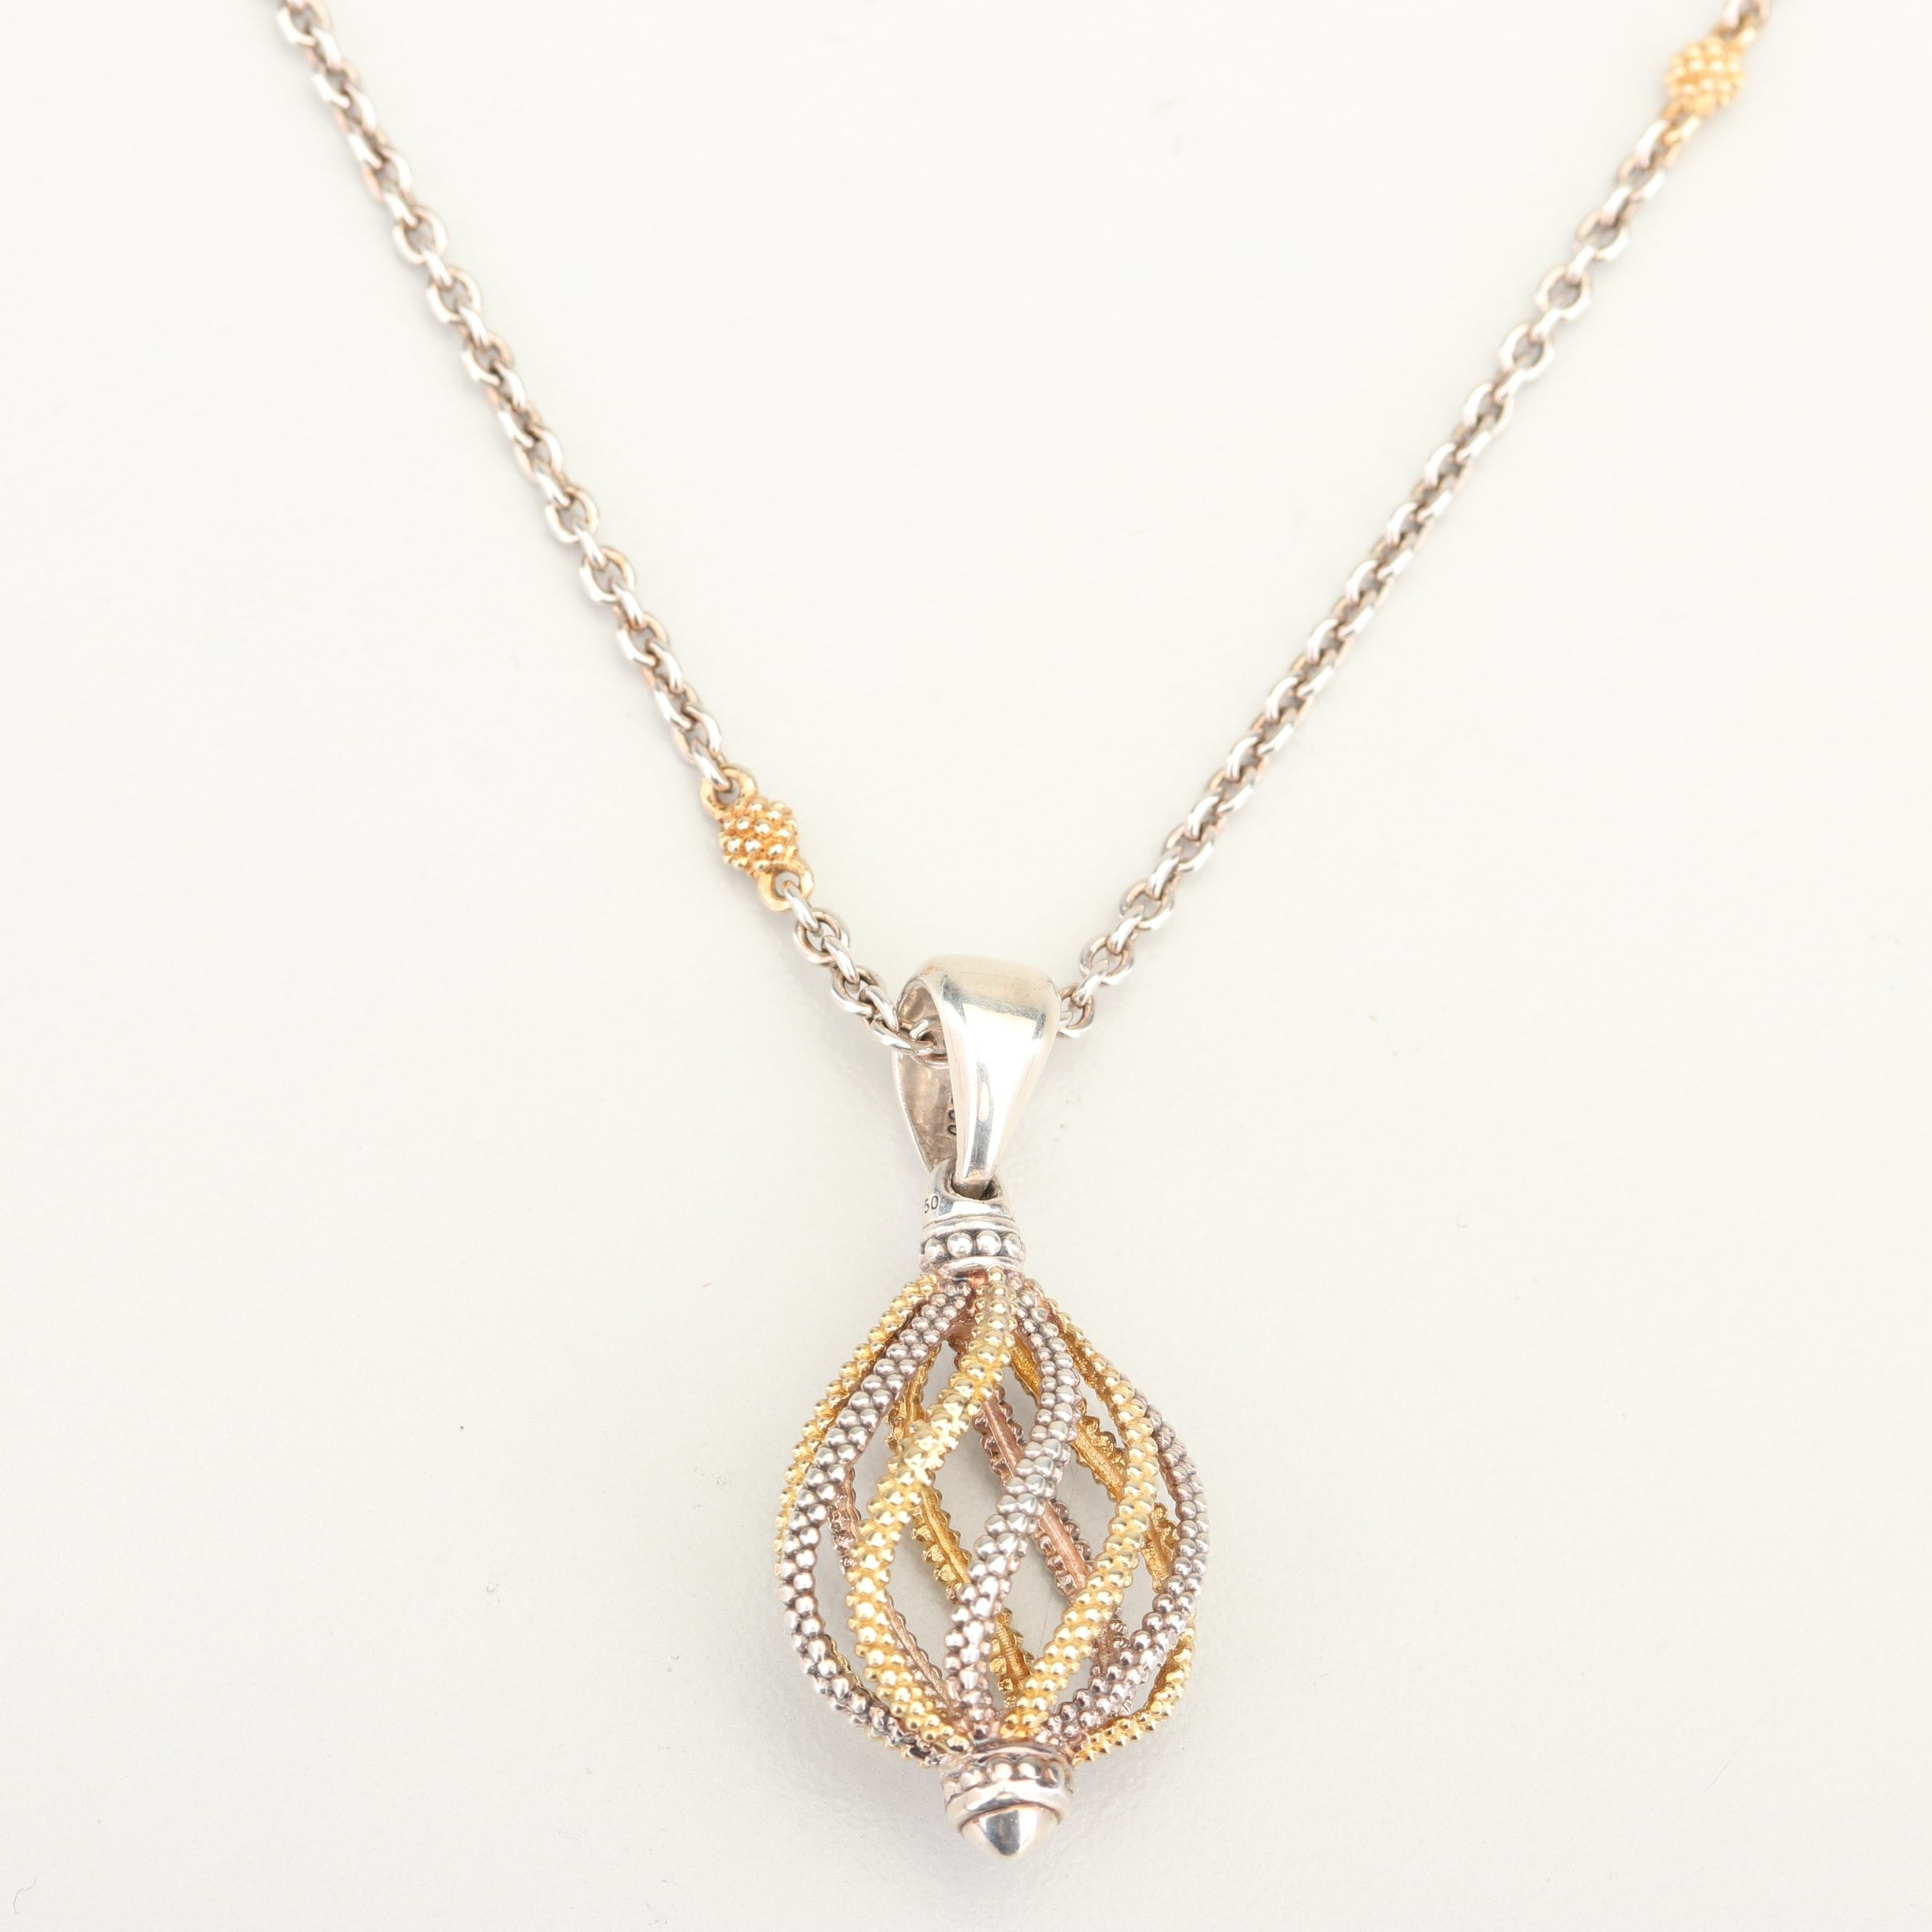 Lagos 18K Yellow Gold Accented Sterling Silver Pendant Necklace